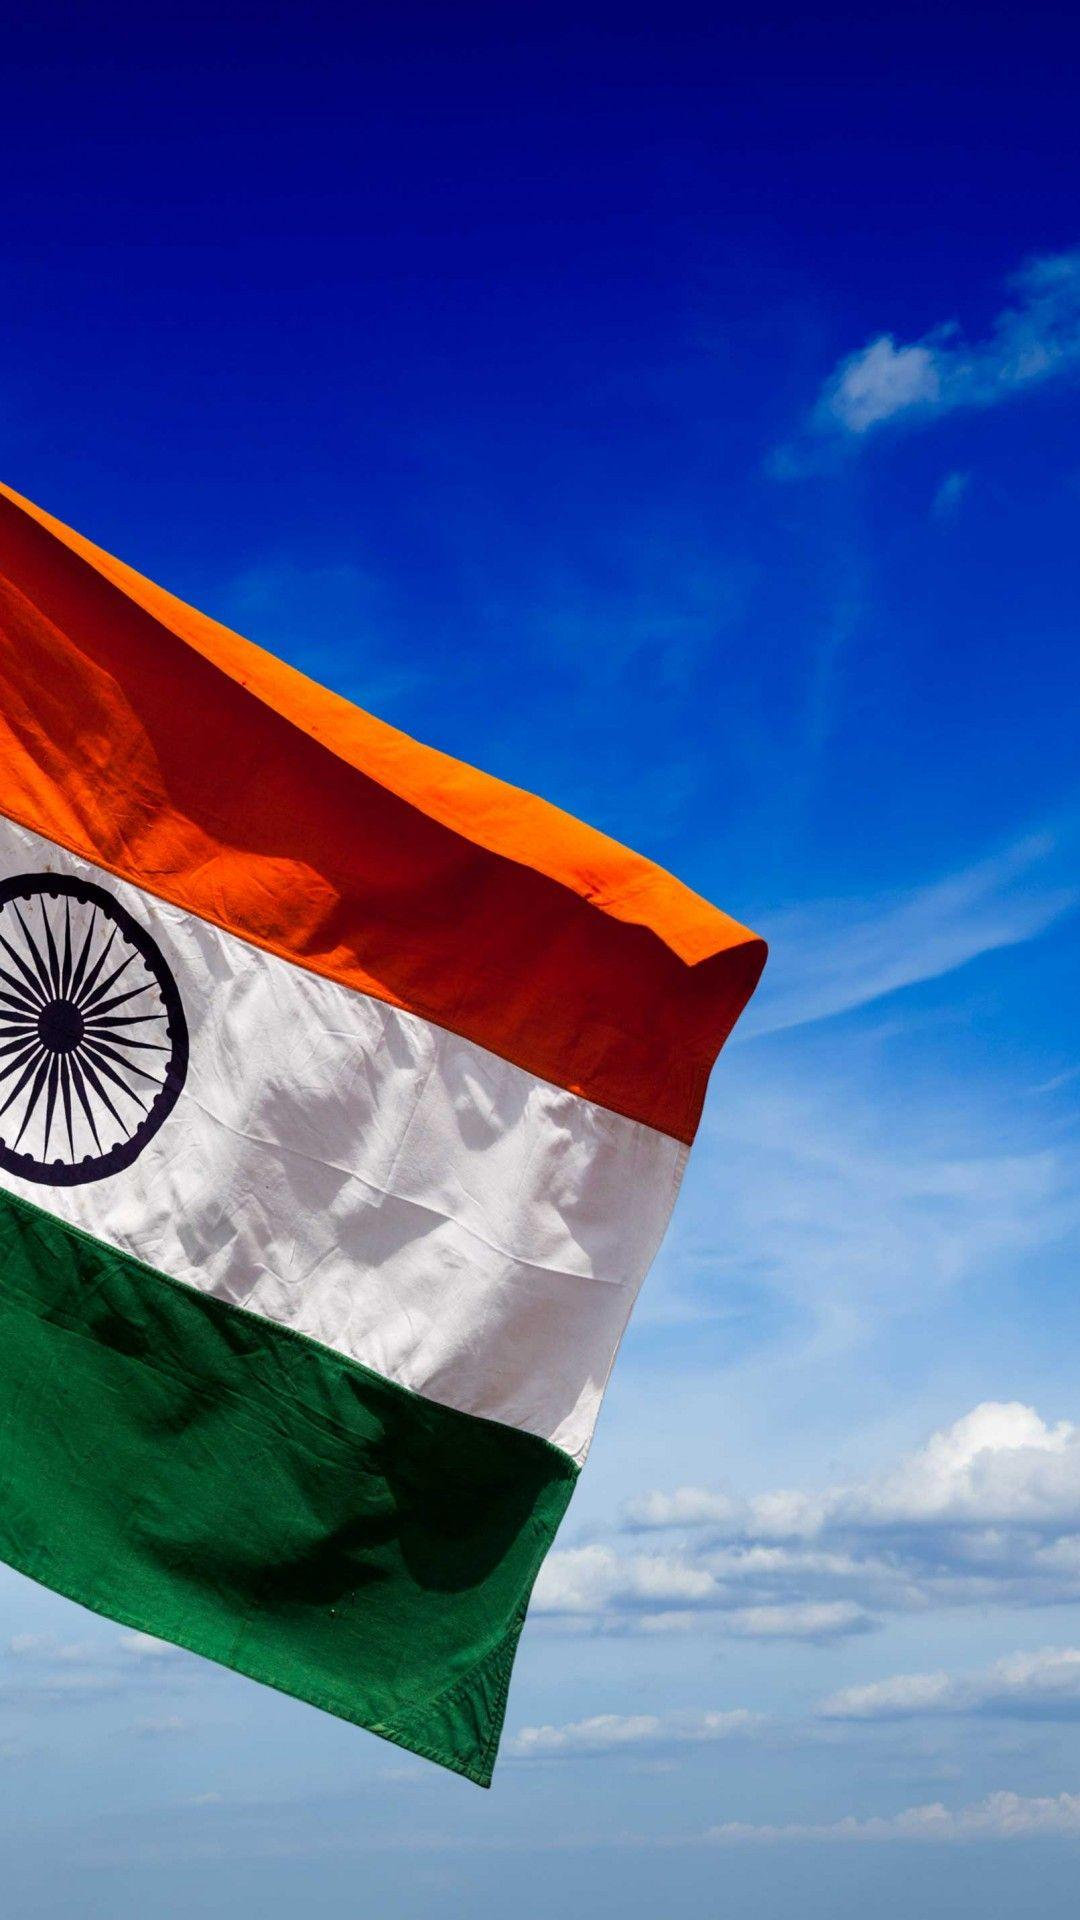 Indian flag 4k wallpapers wallpaper cave - Indian flag 4k wallpaper ...